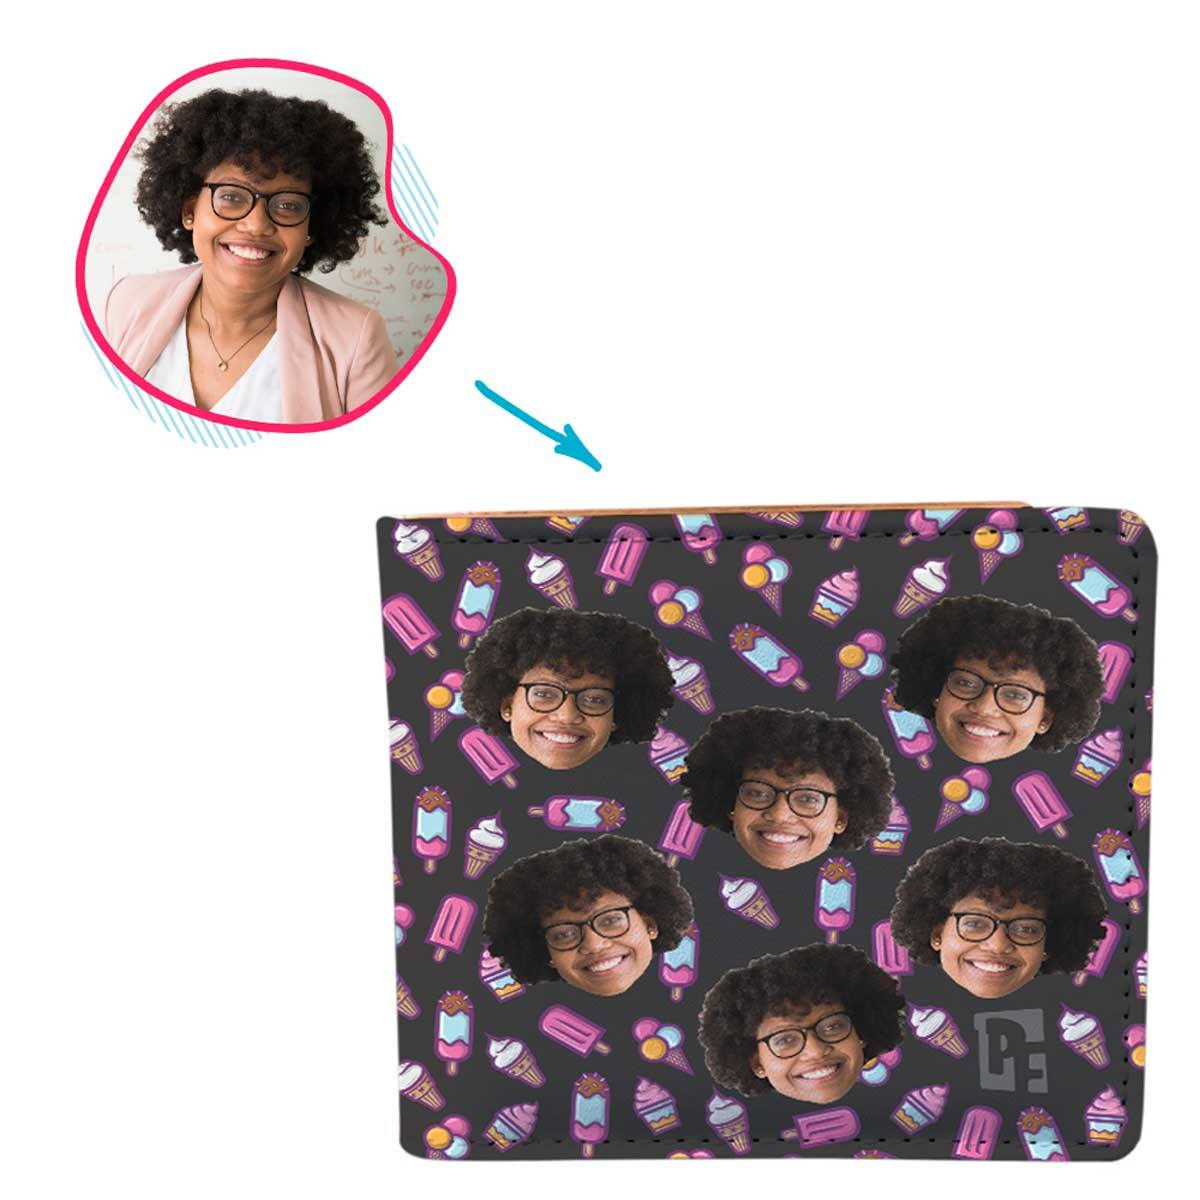 dark Candies wallet personalized with photo of face printed on it